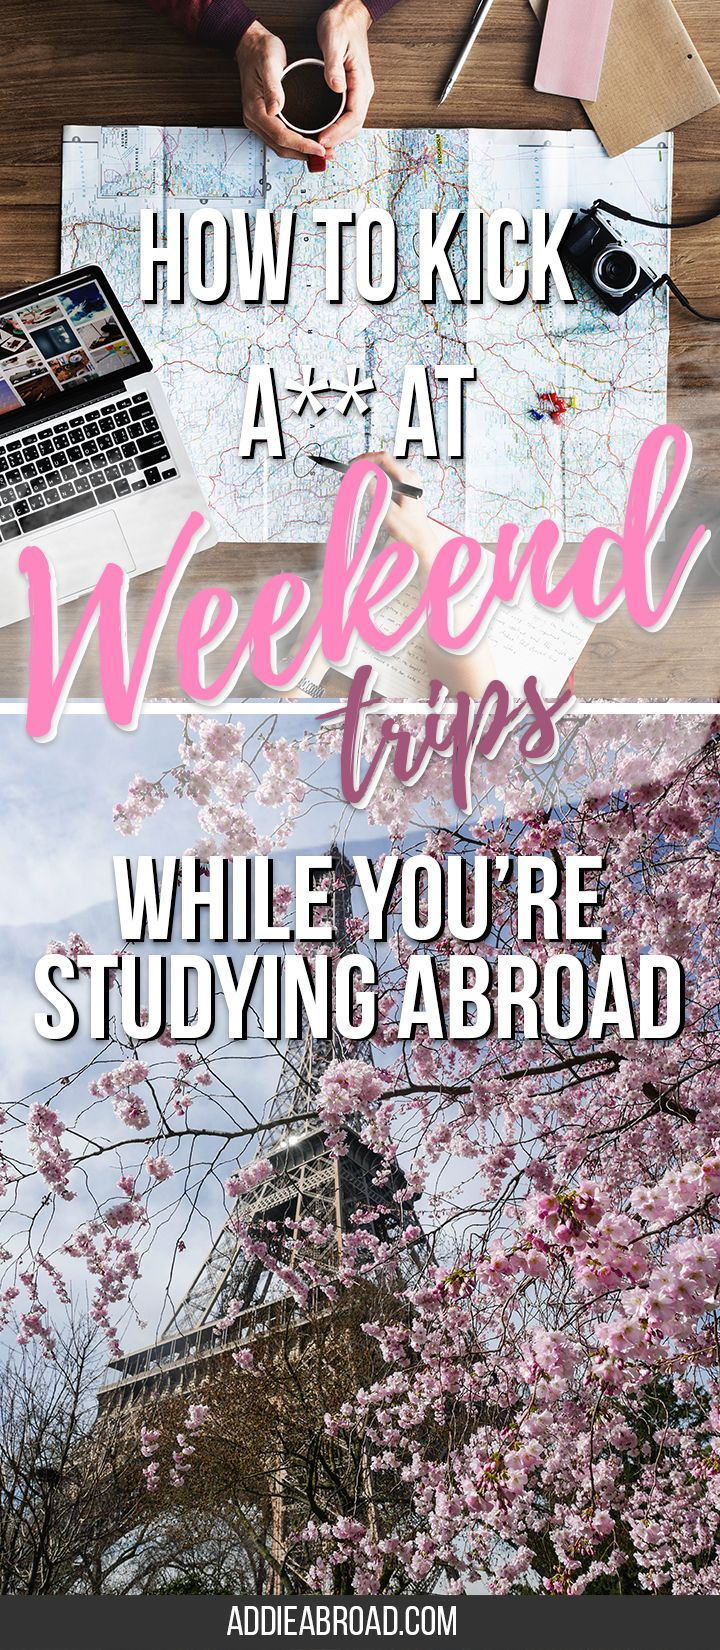 Taking weekend trip is one of the best parts of studying abroad in Europe. You can travel all over Europe on a budget this way. Here's the ultimate guide to taking weekend trips in Europe during study abroad! via @addieabroad